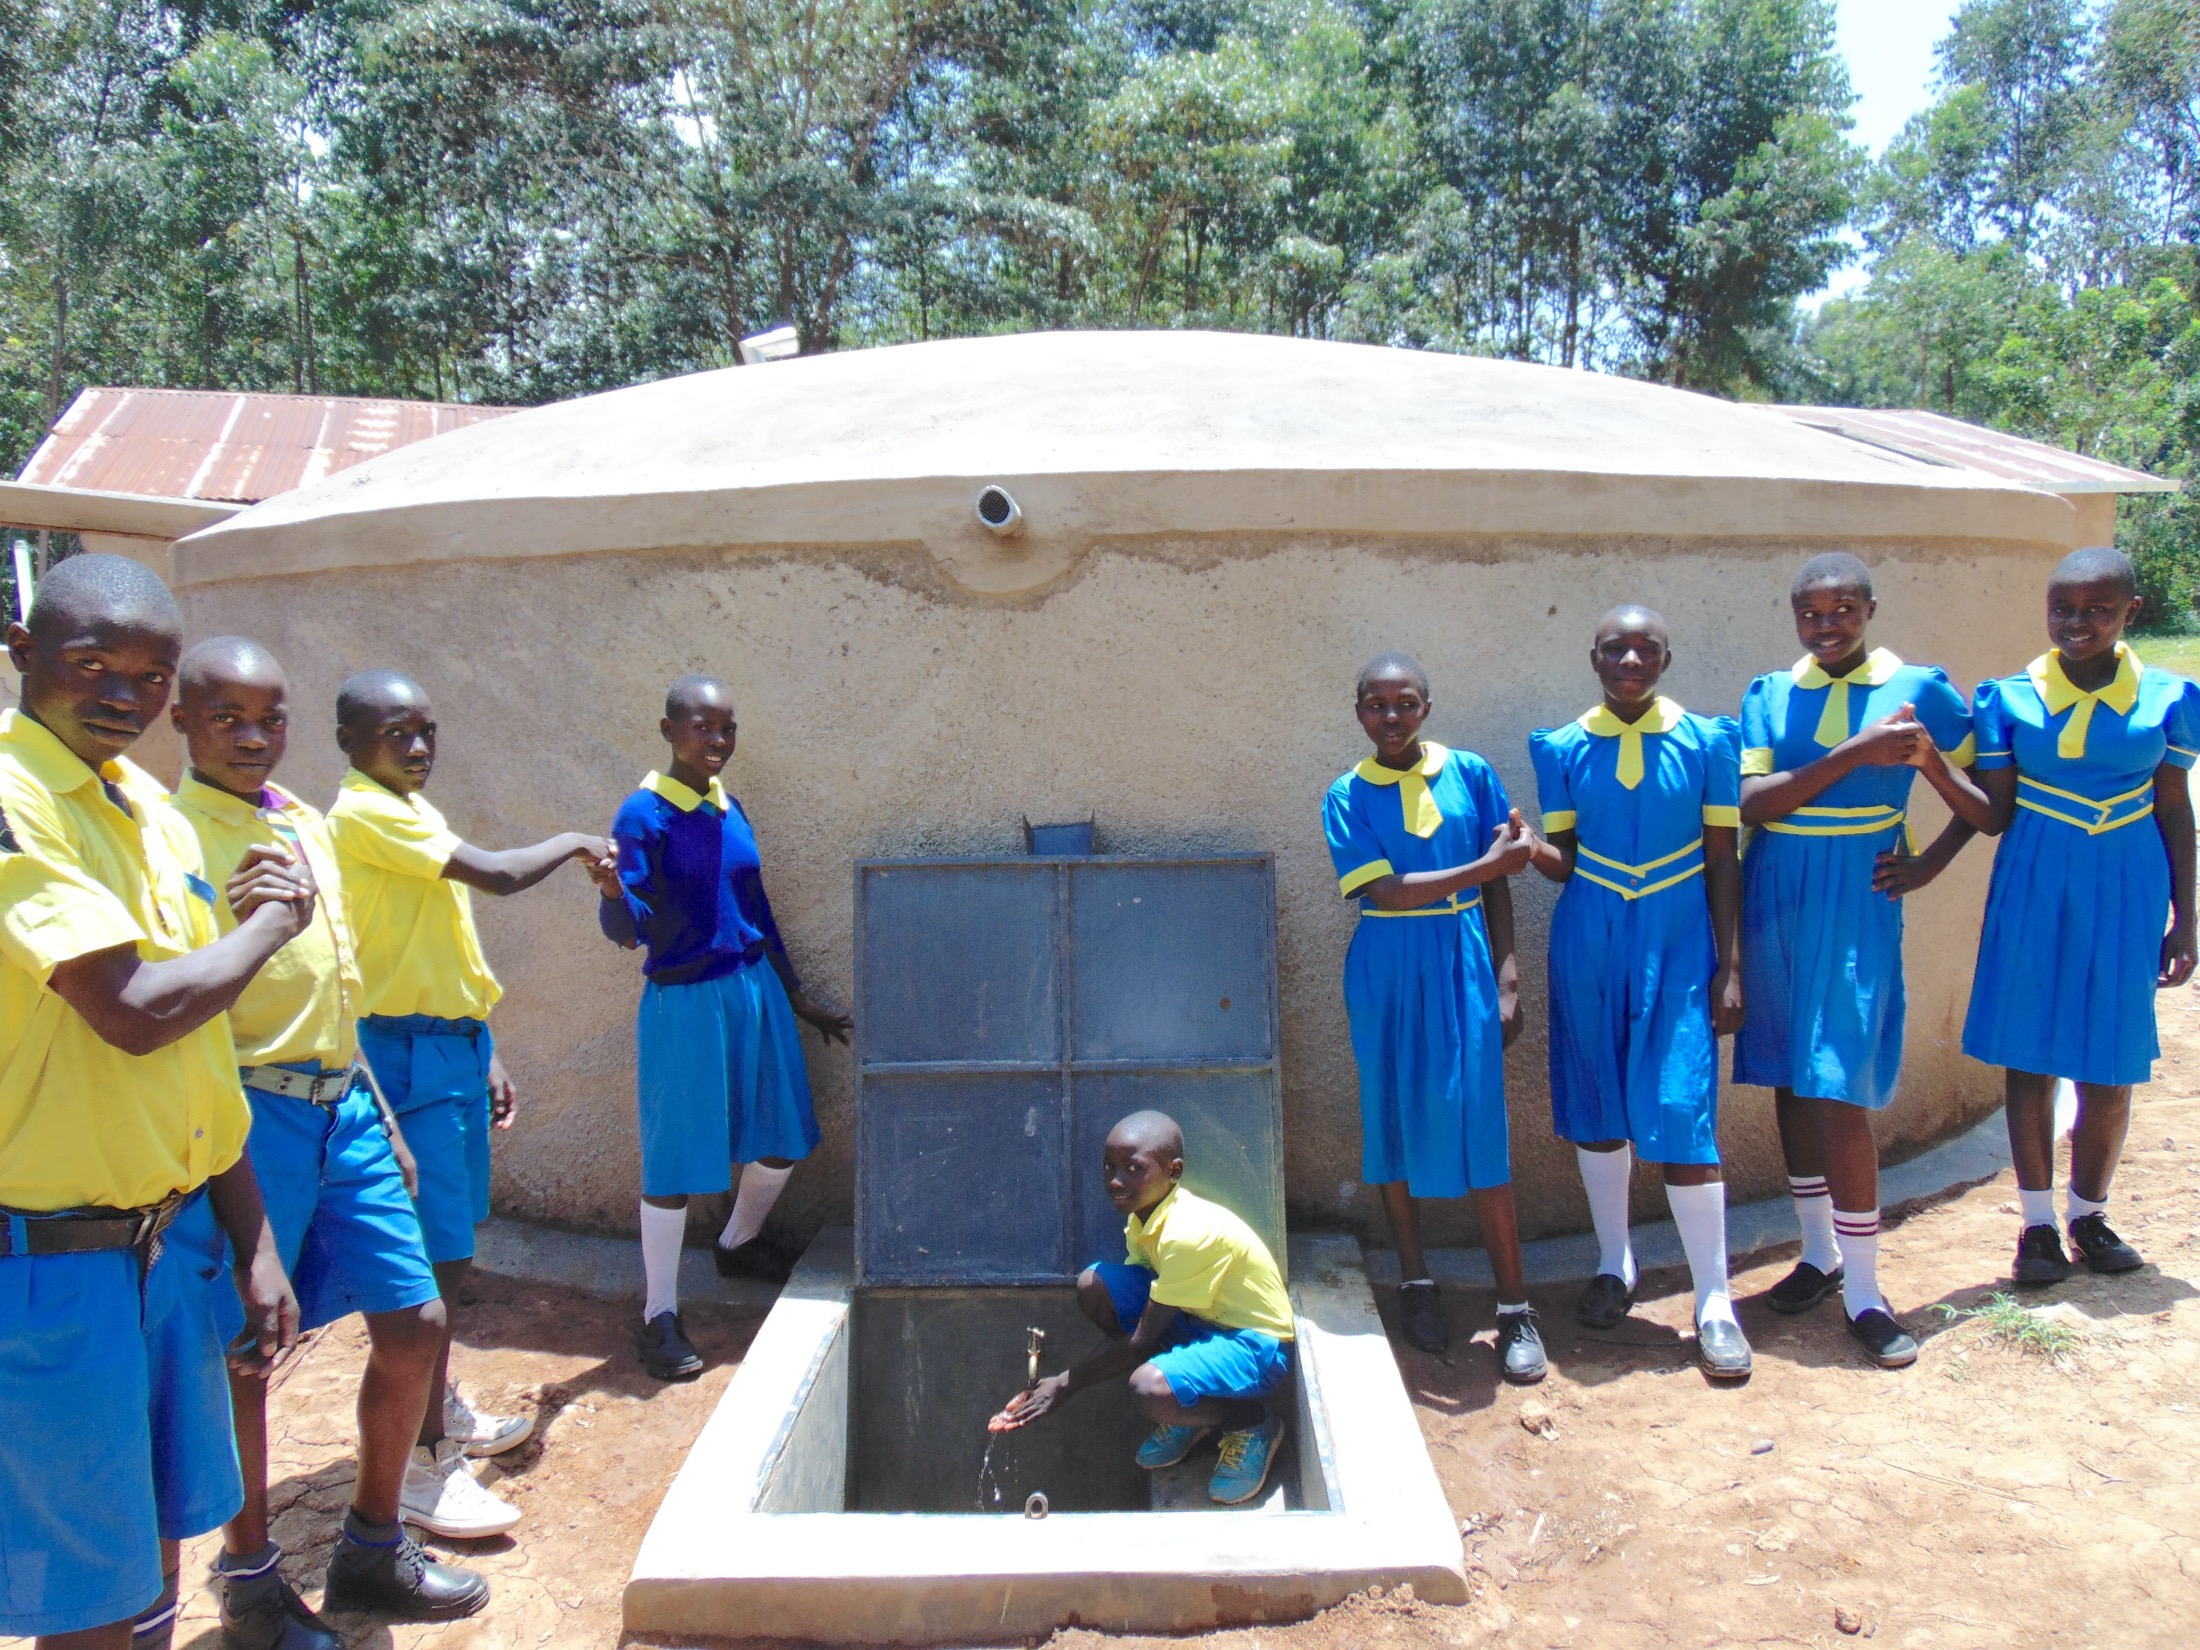 The Water Project : 42-kenya20103-pupils-pose-with-rain-tank